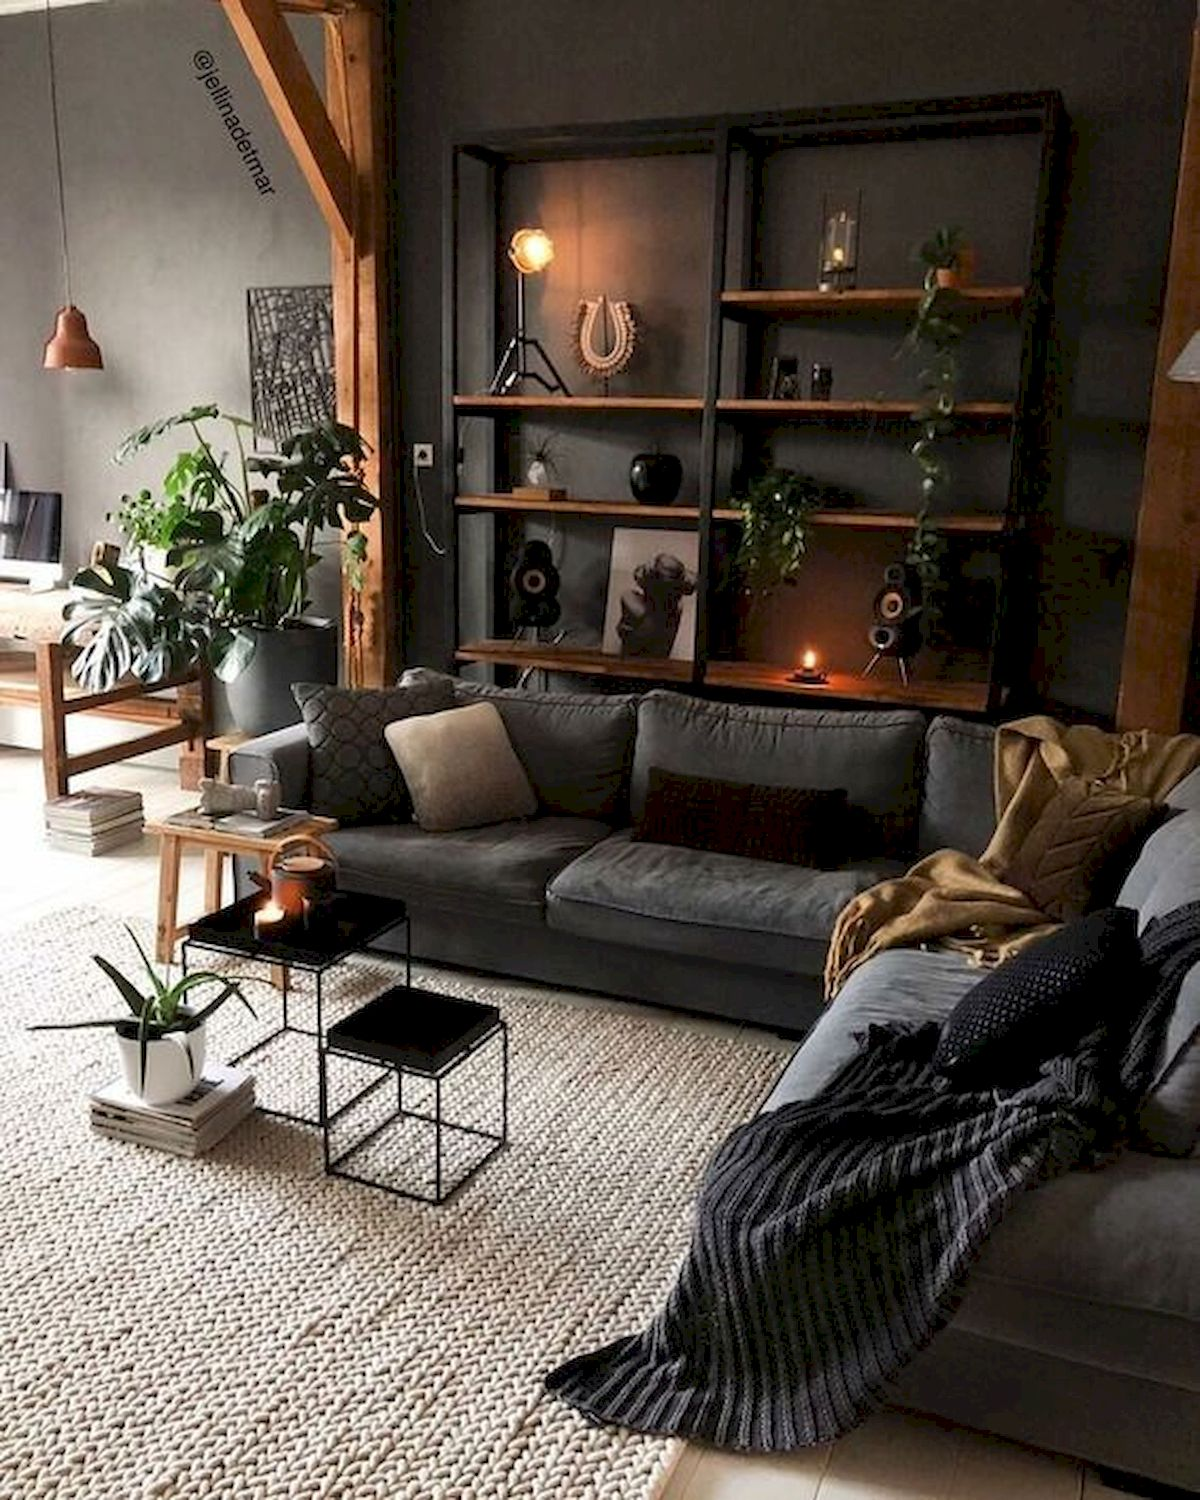 stunning scandinavian interior design | 35 Stunning Scandinavian Interior Design and Decor Ideas ...